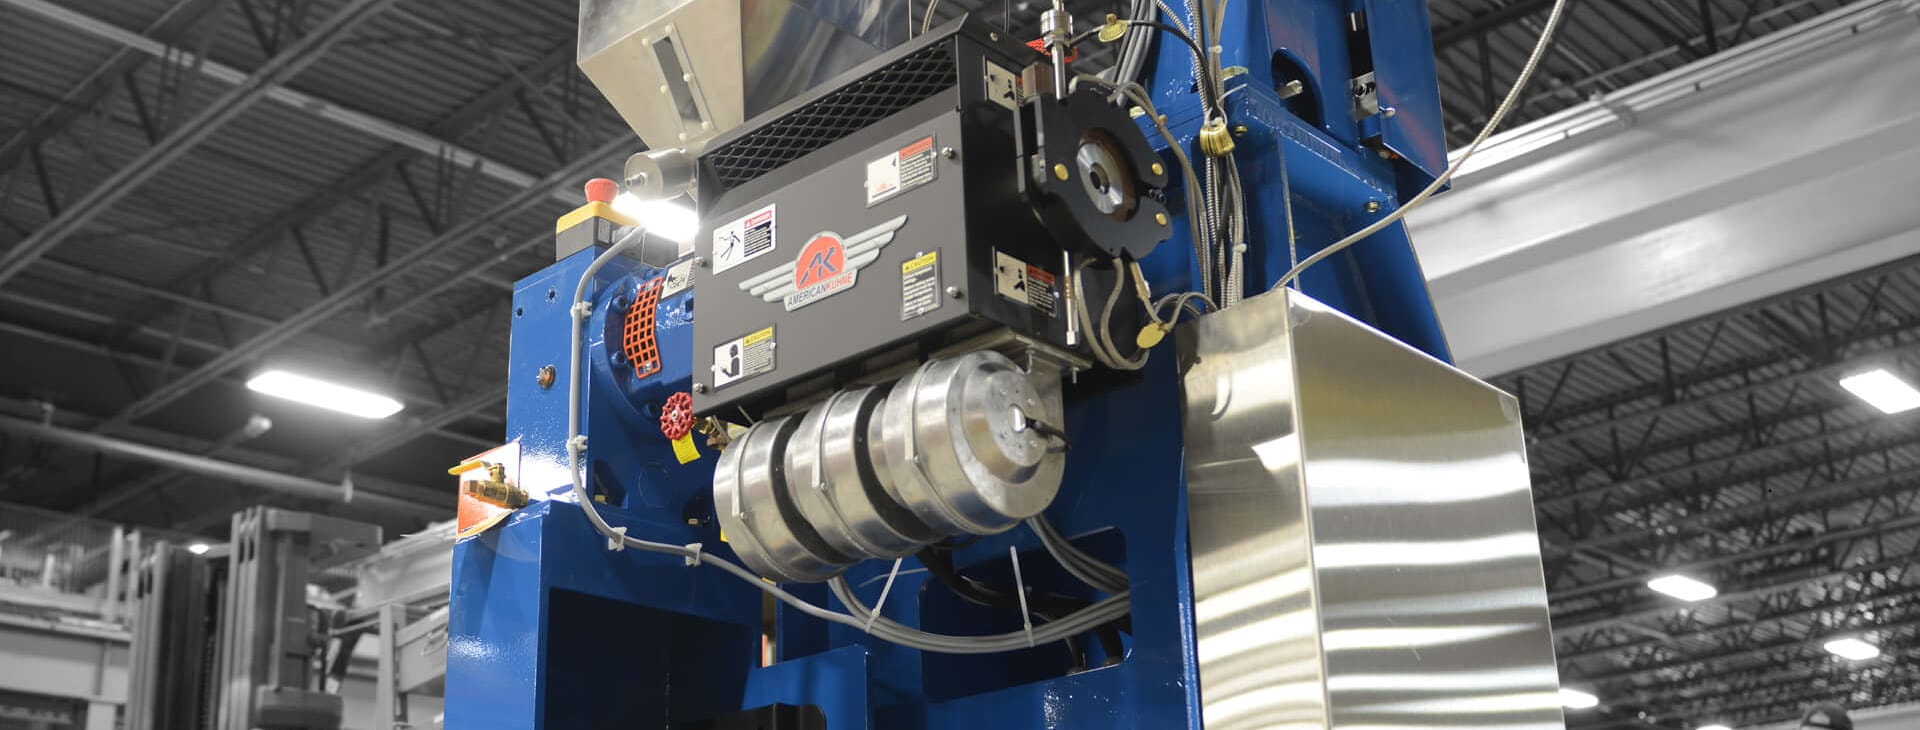 AKcent extruder in royal blue in a factory setting